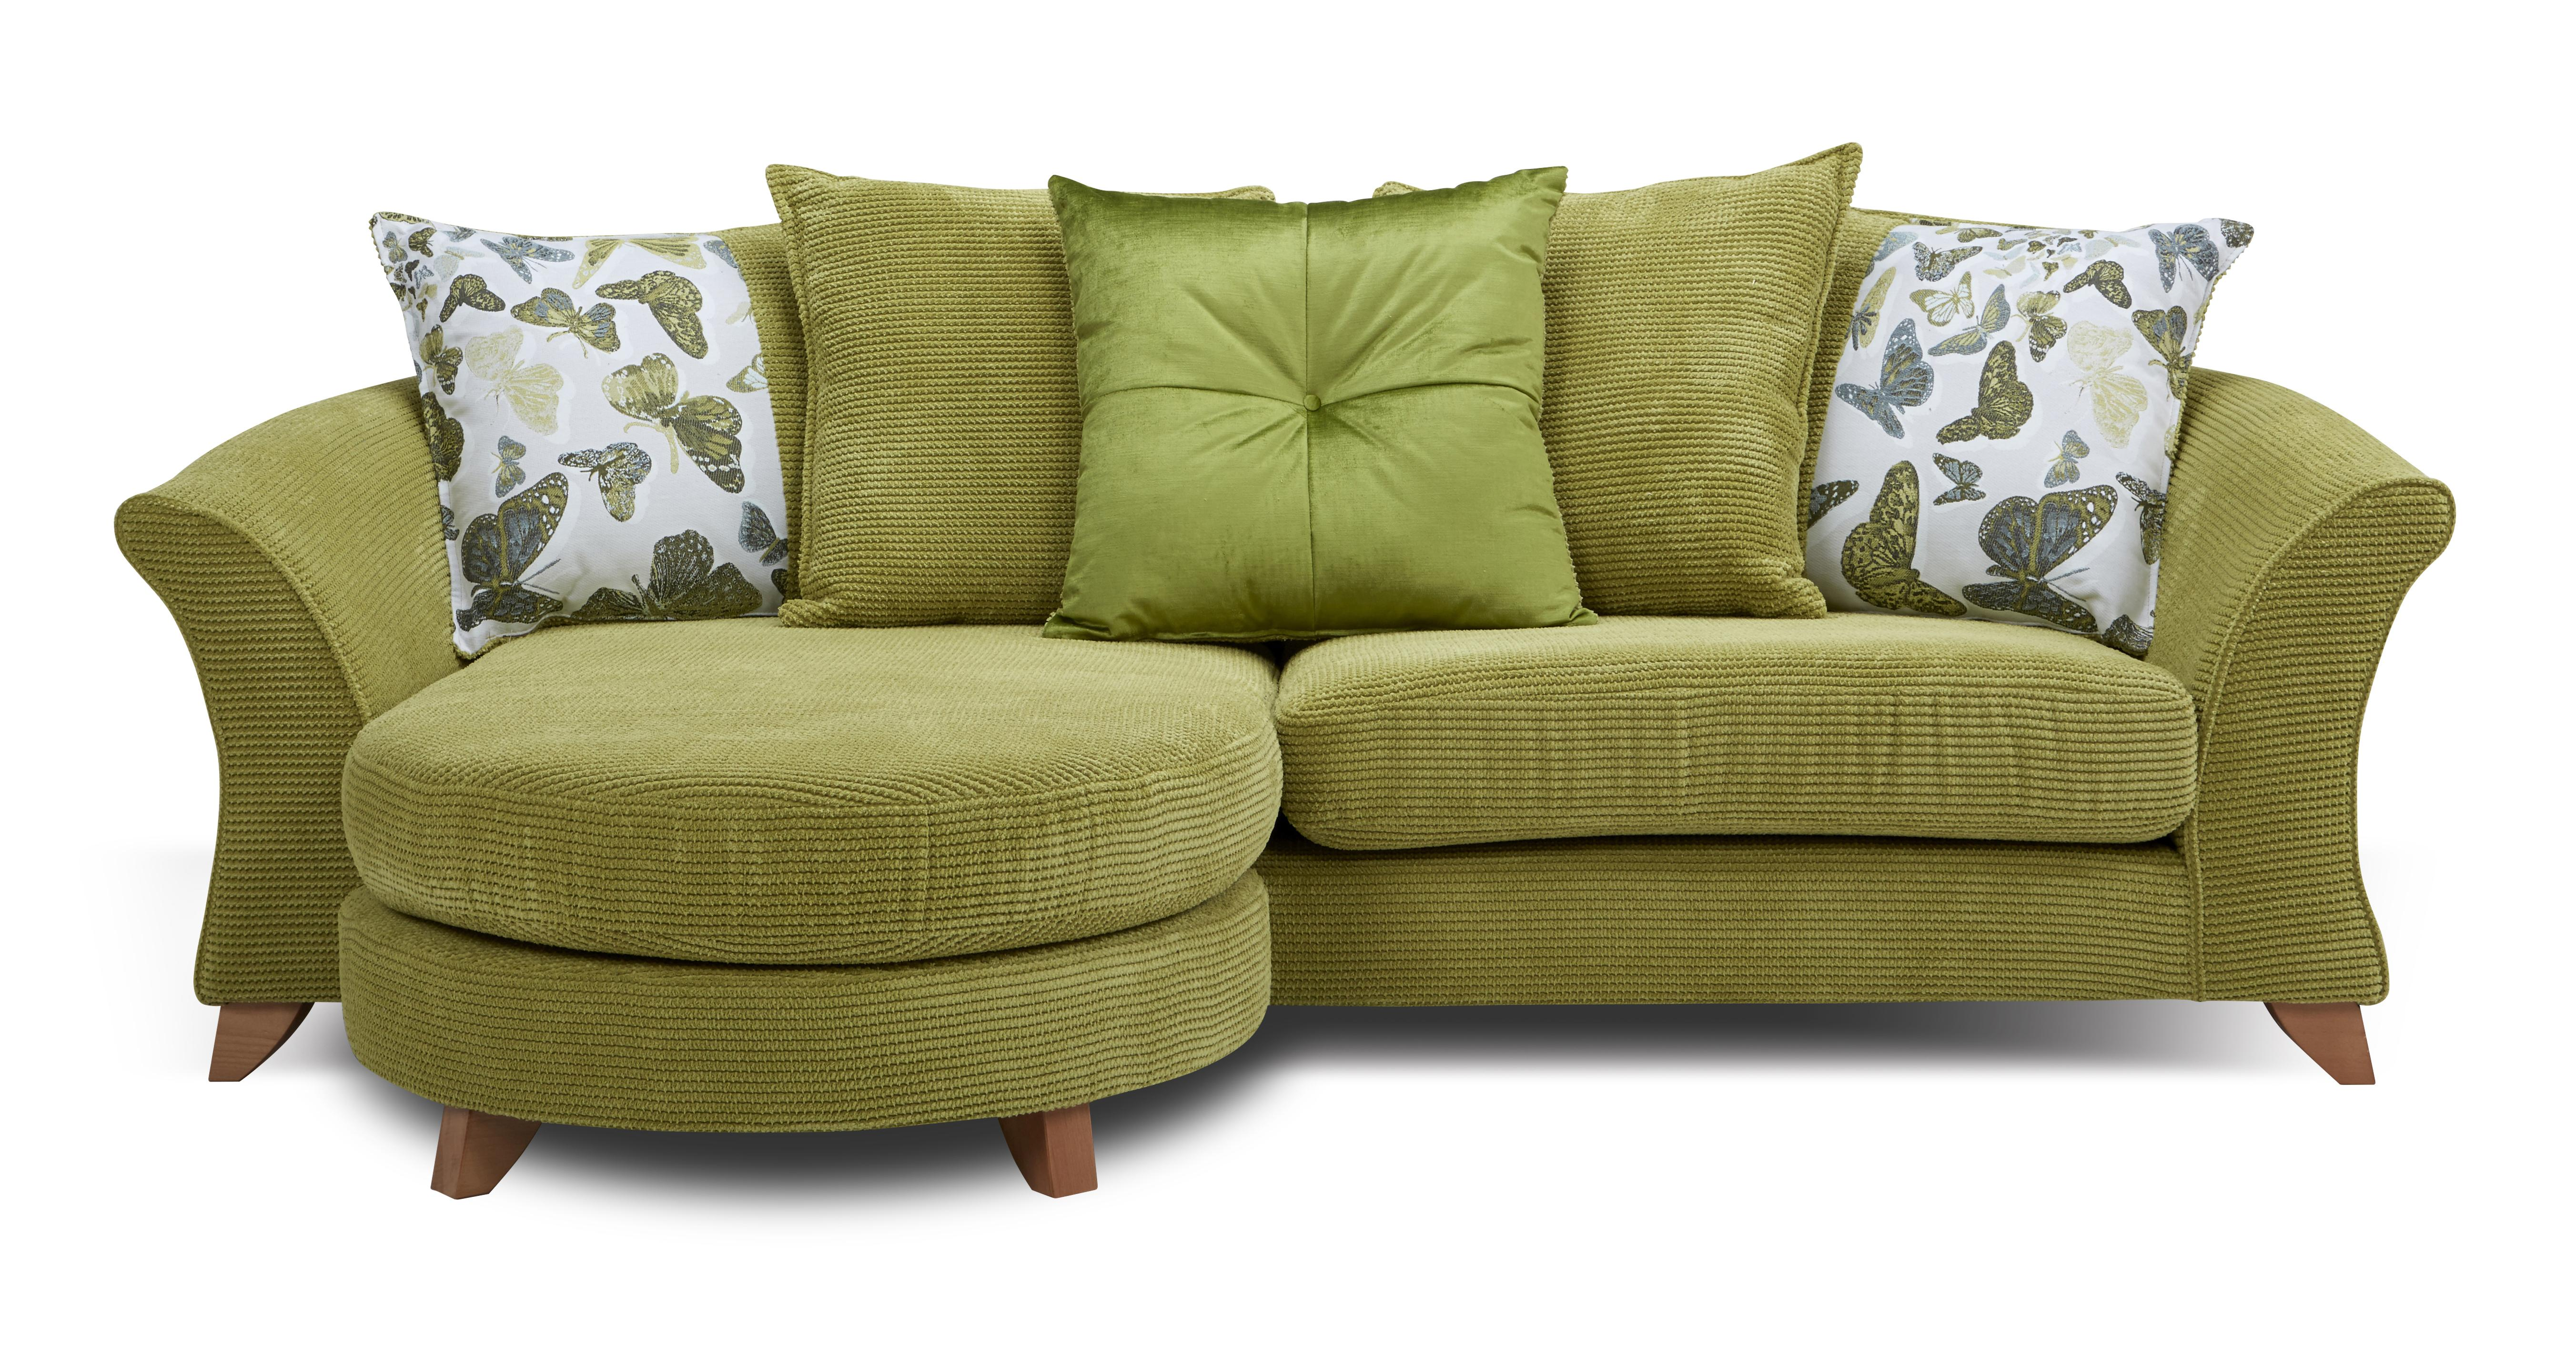 Marni 4 seater pillow back lounger sofa escape dfs ireland for Perez 4 seater pillow back sectional sofa